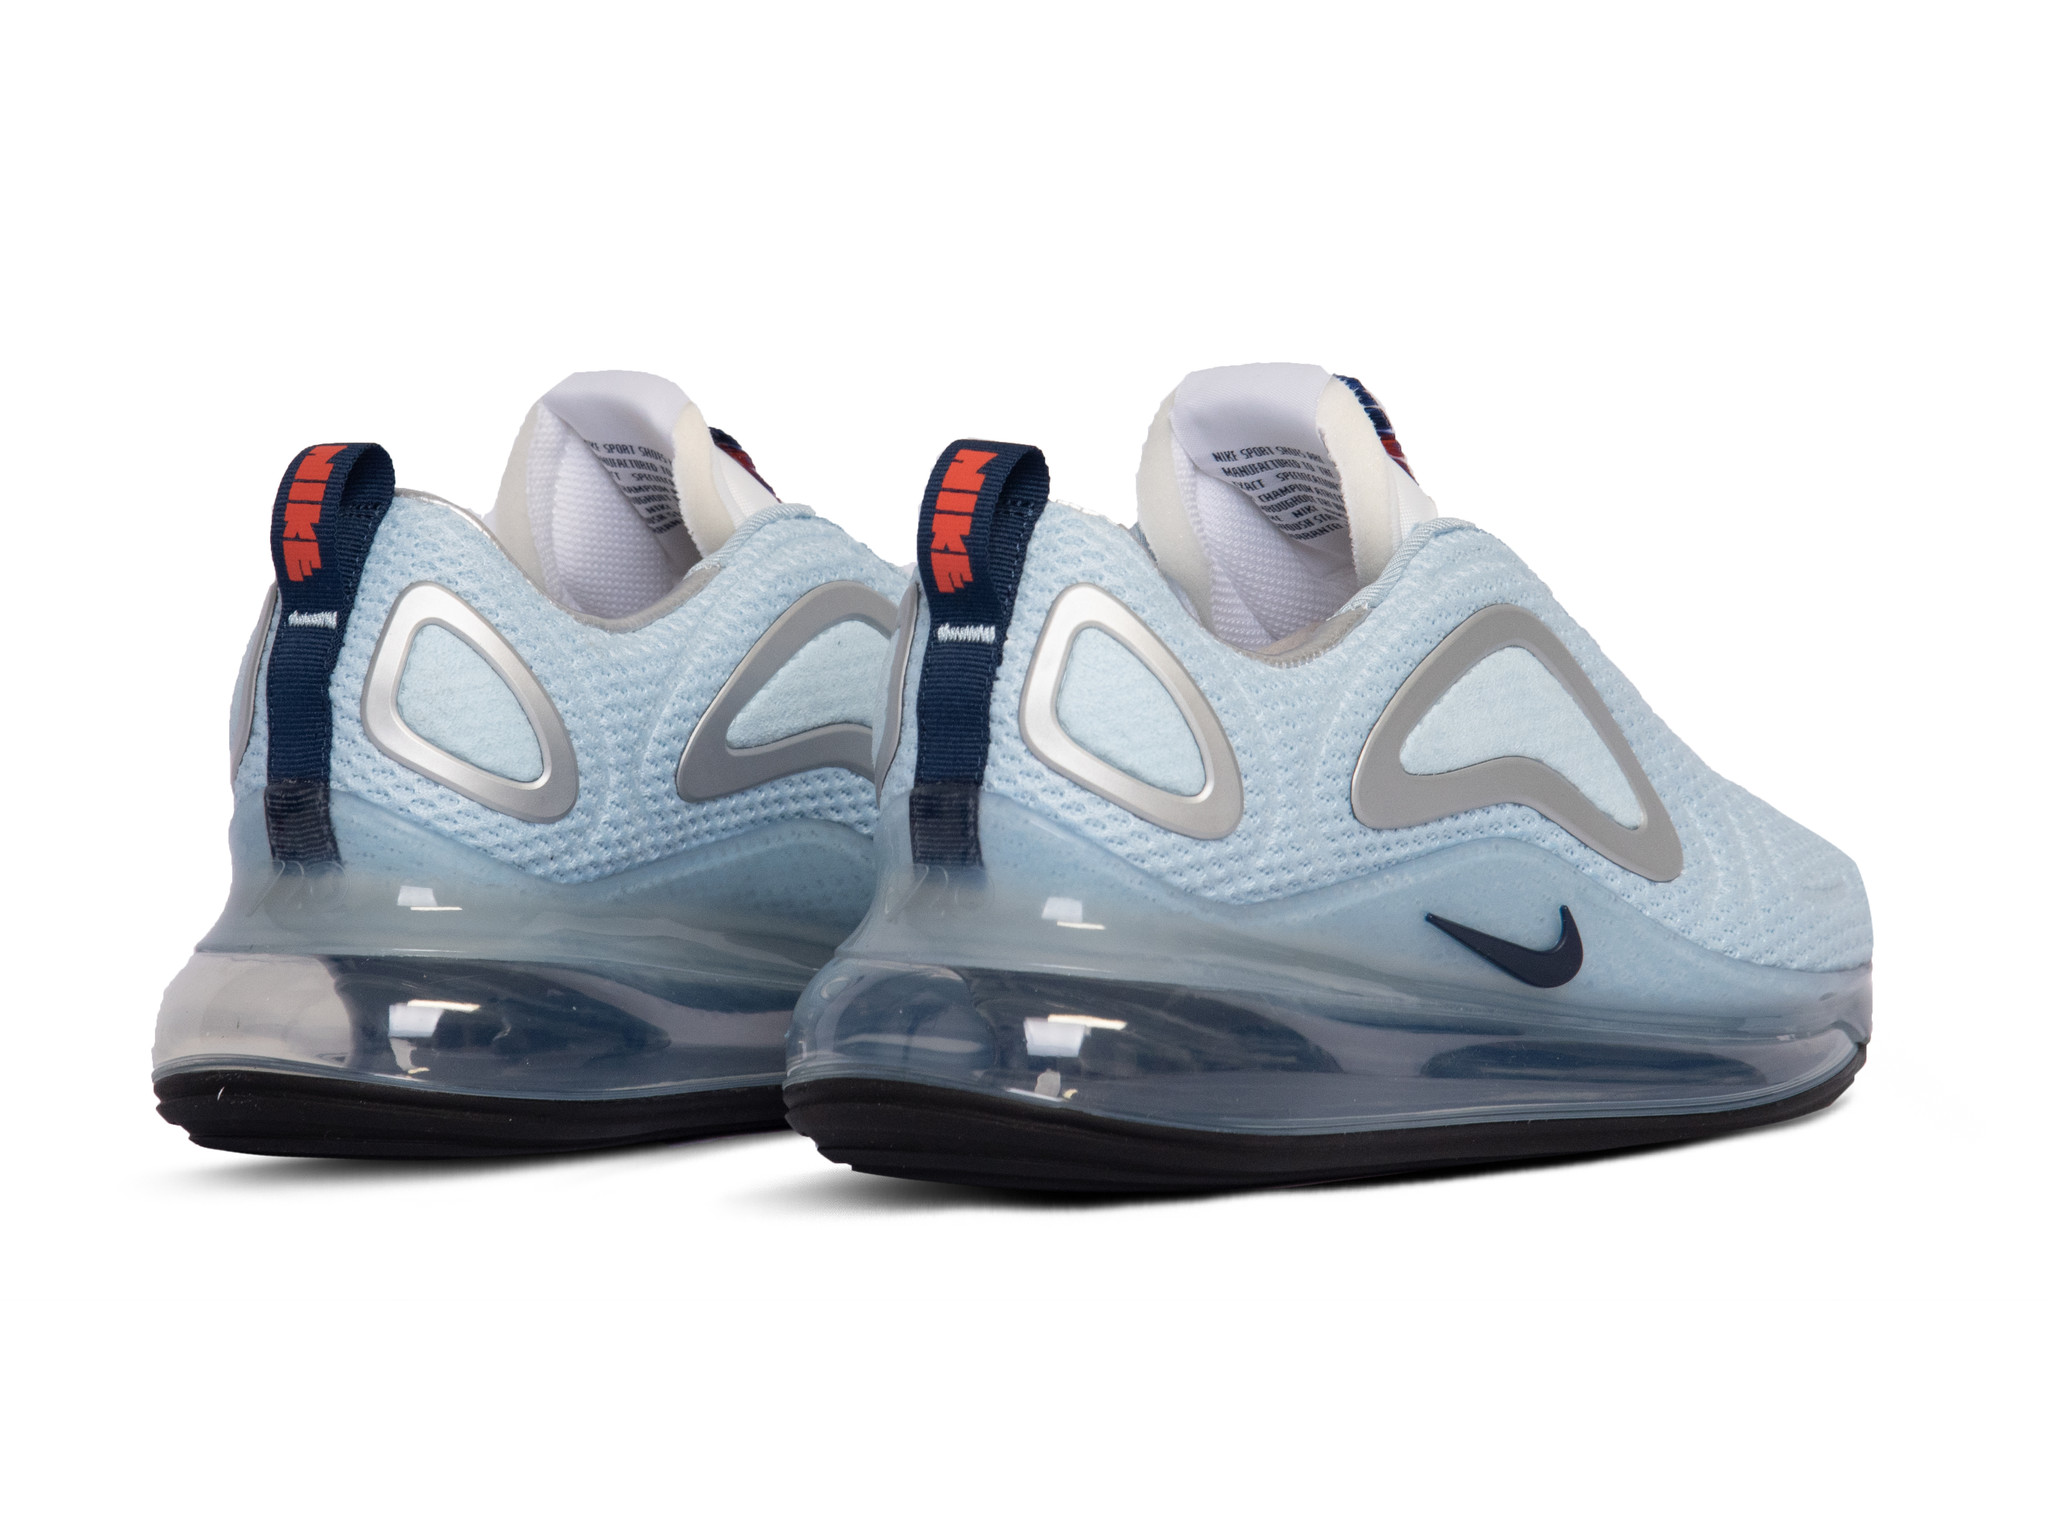 Air Max 720 Celestine Blue Team Orange CK5033 400 Bruut